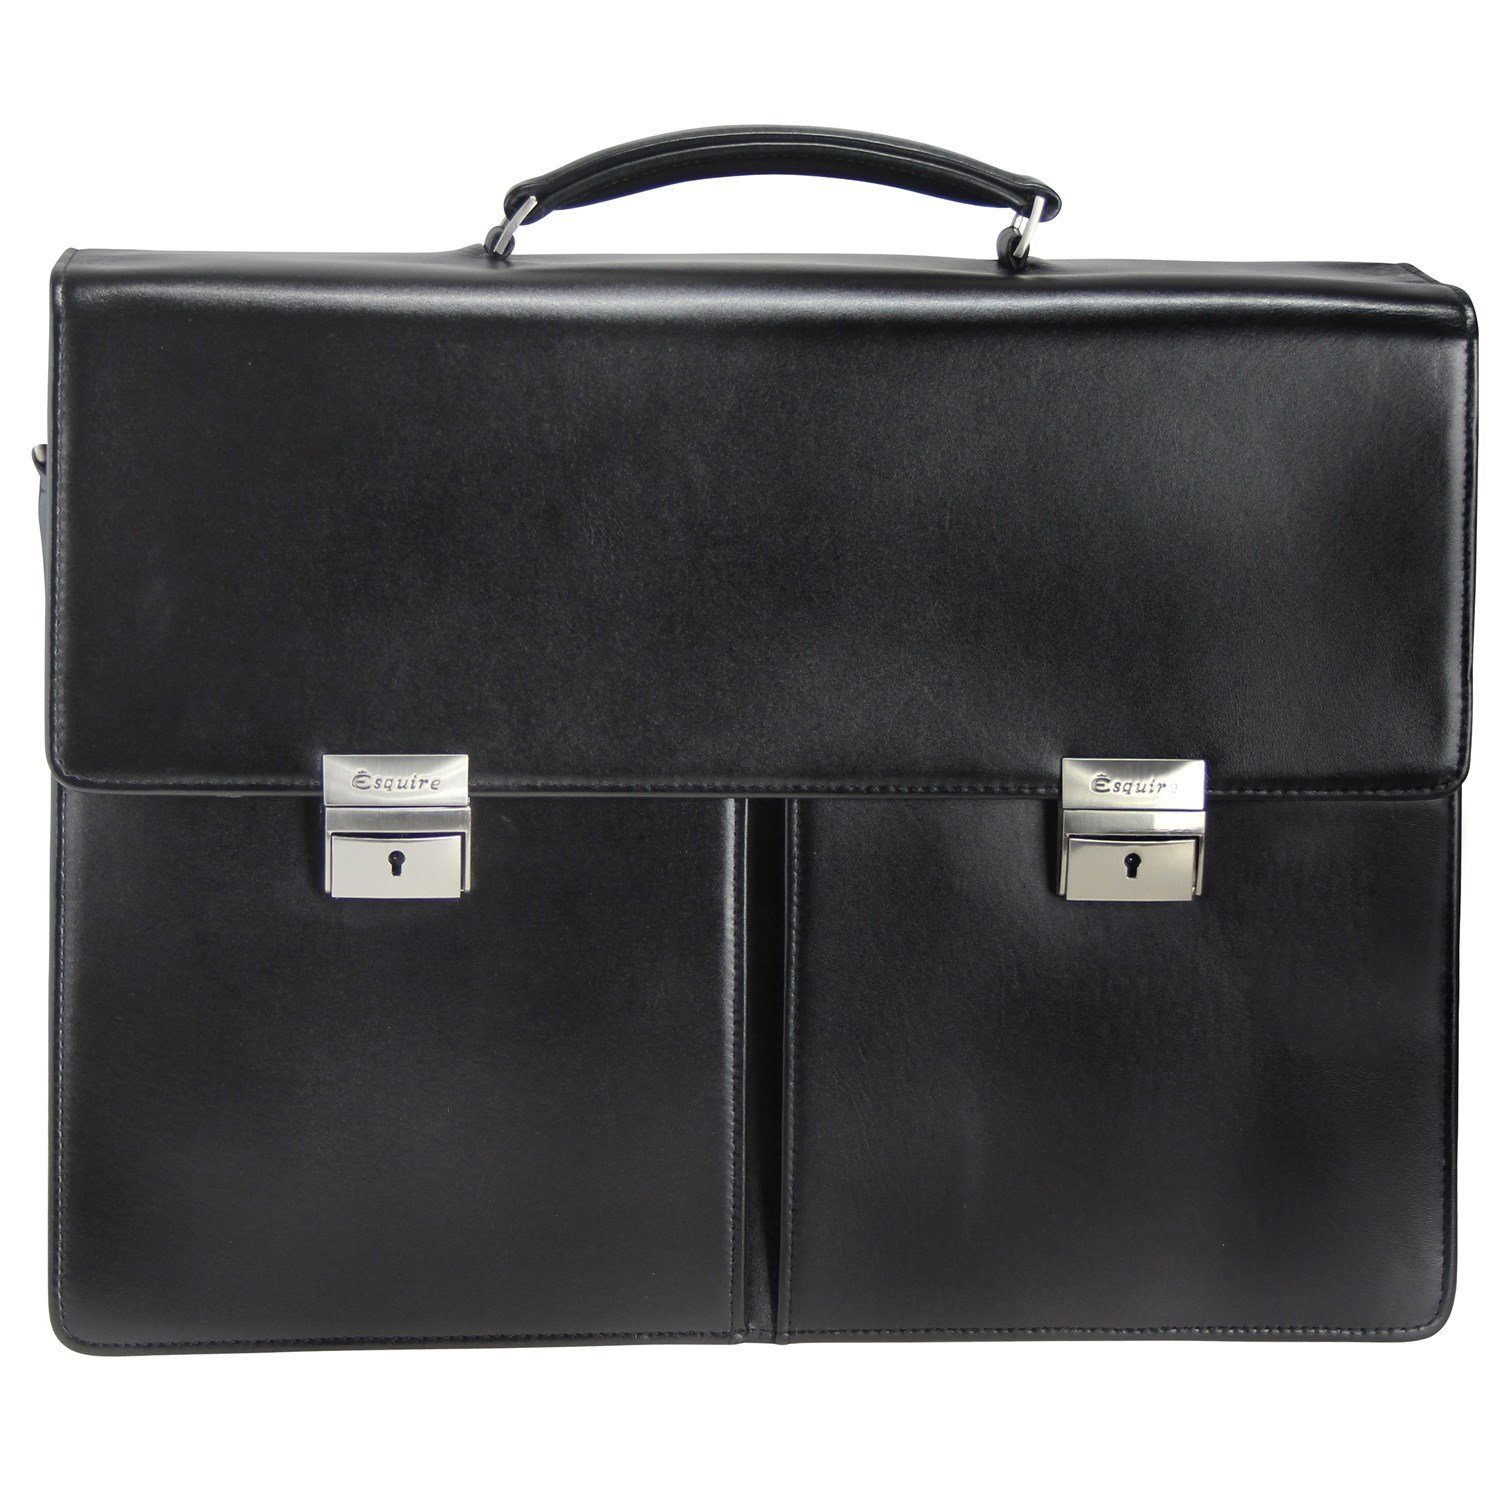 Esquire Business Aktentasche Leder 41 cm Laptopfach